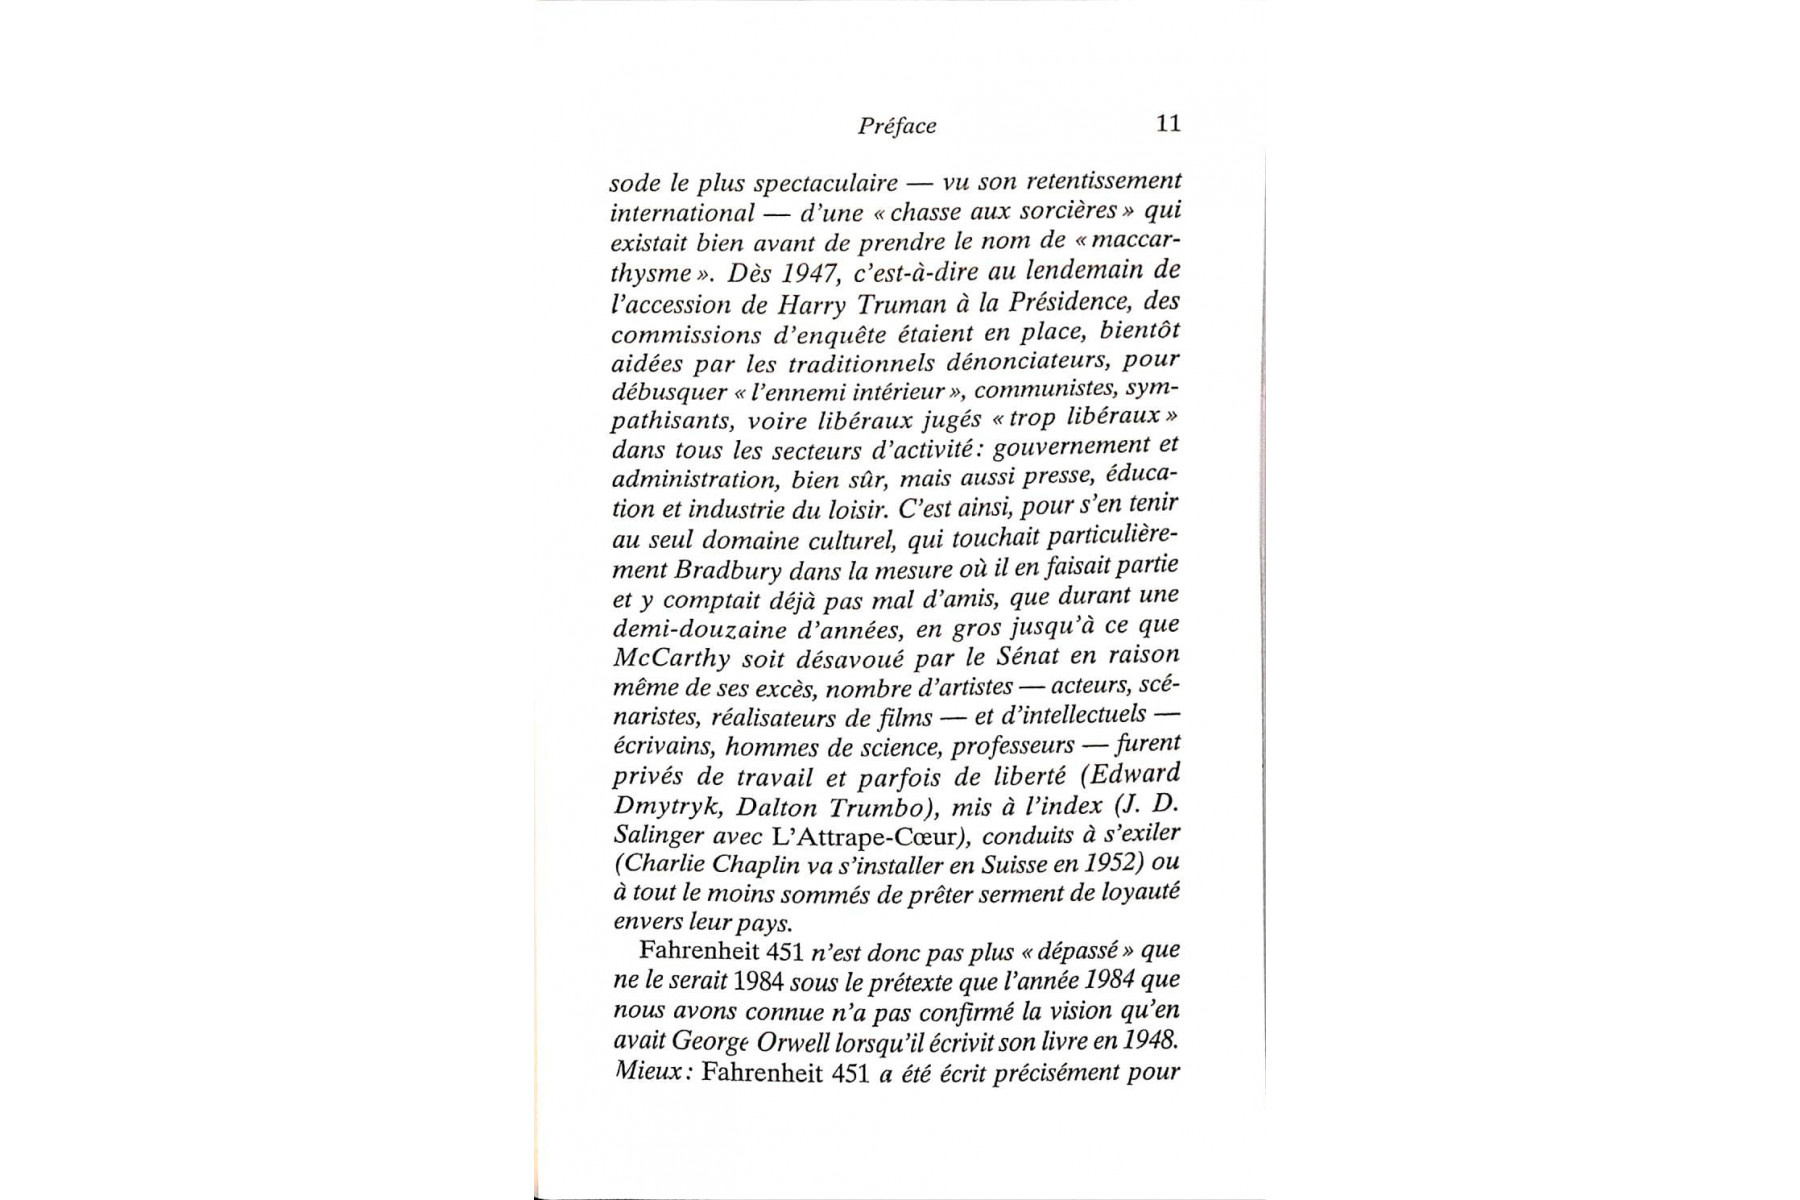 Self-determination theory papers